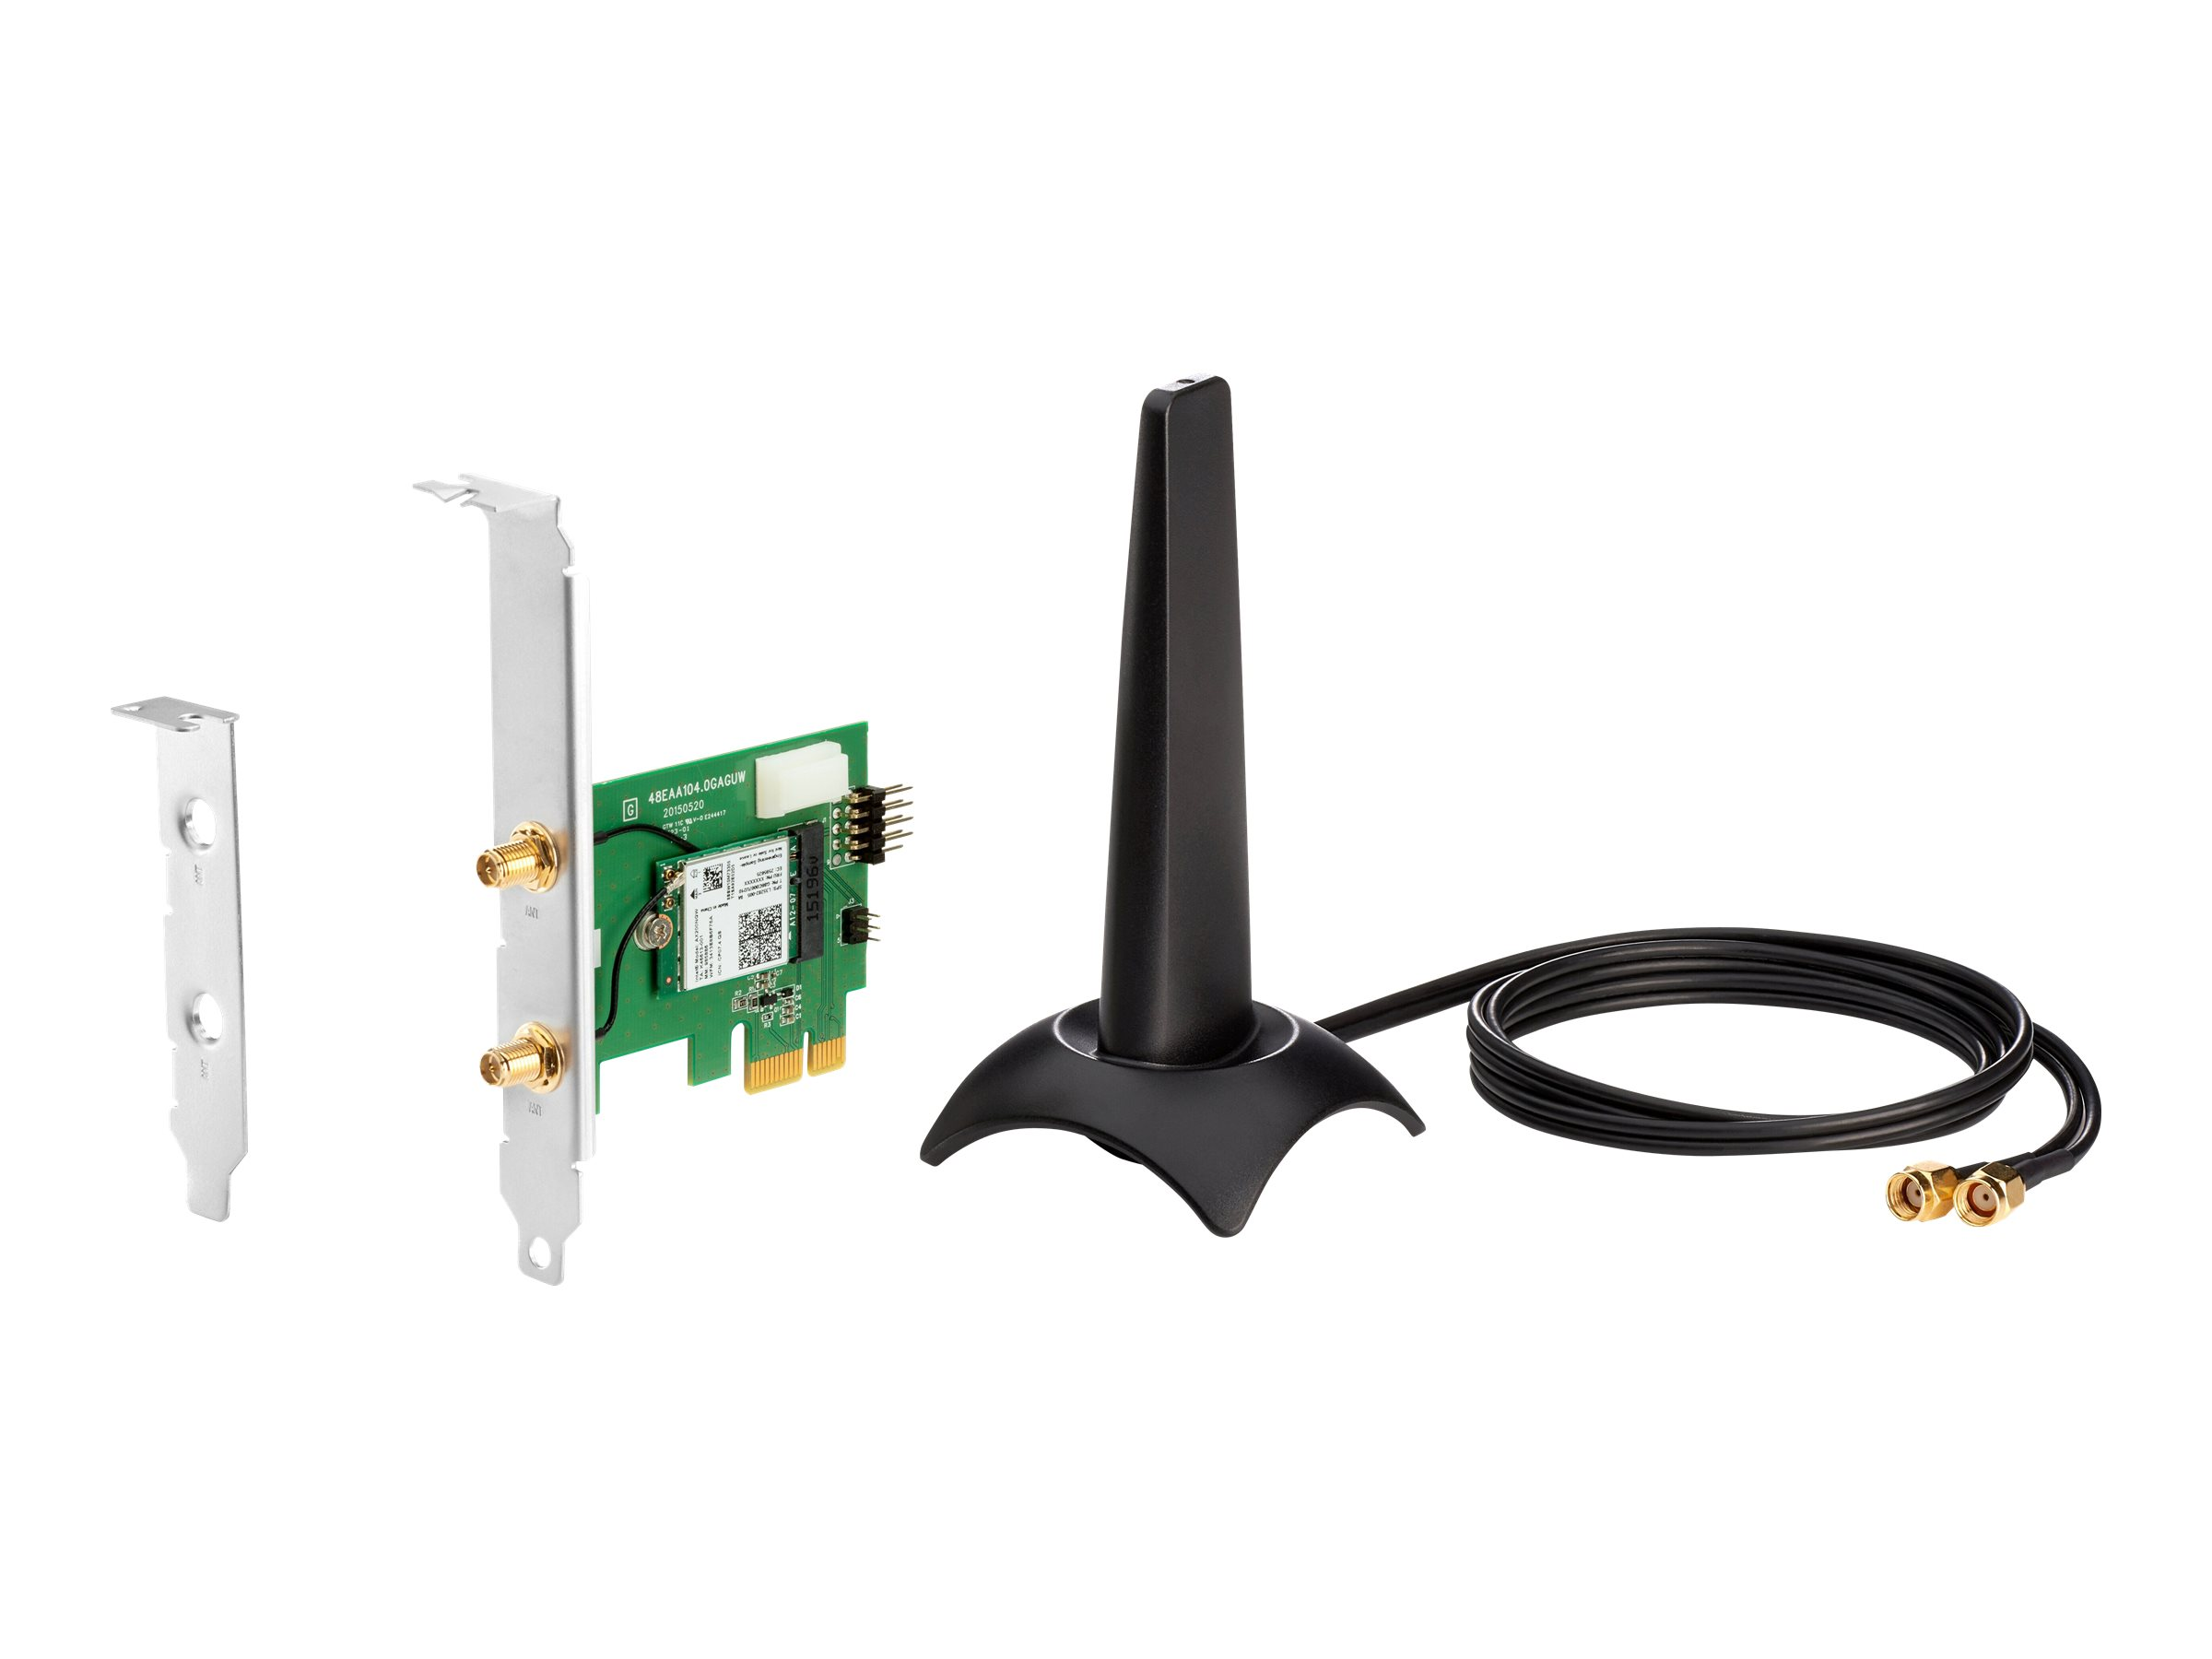 Intel Wi-Fi 6 AX200 - network adapter - PCIe